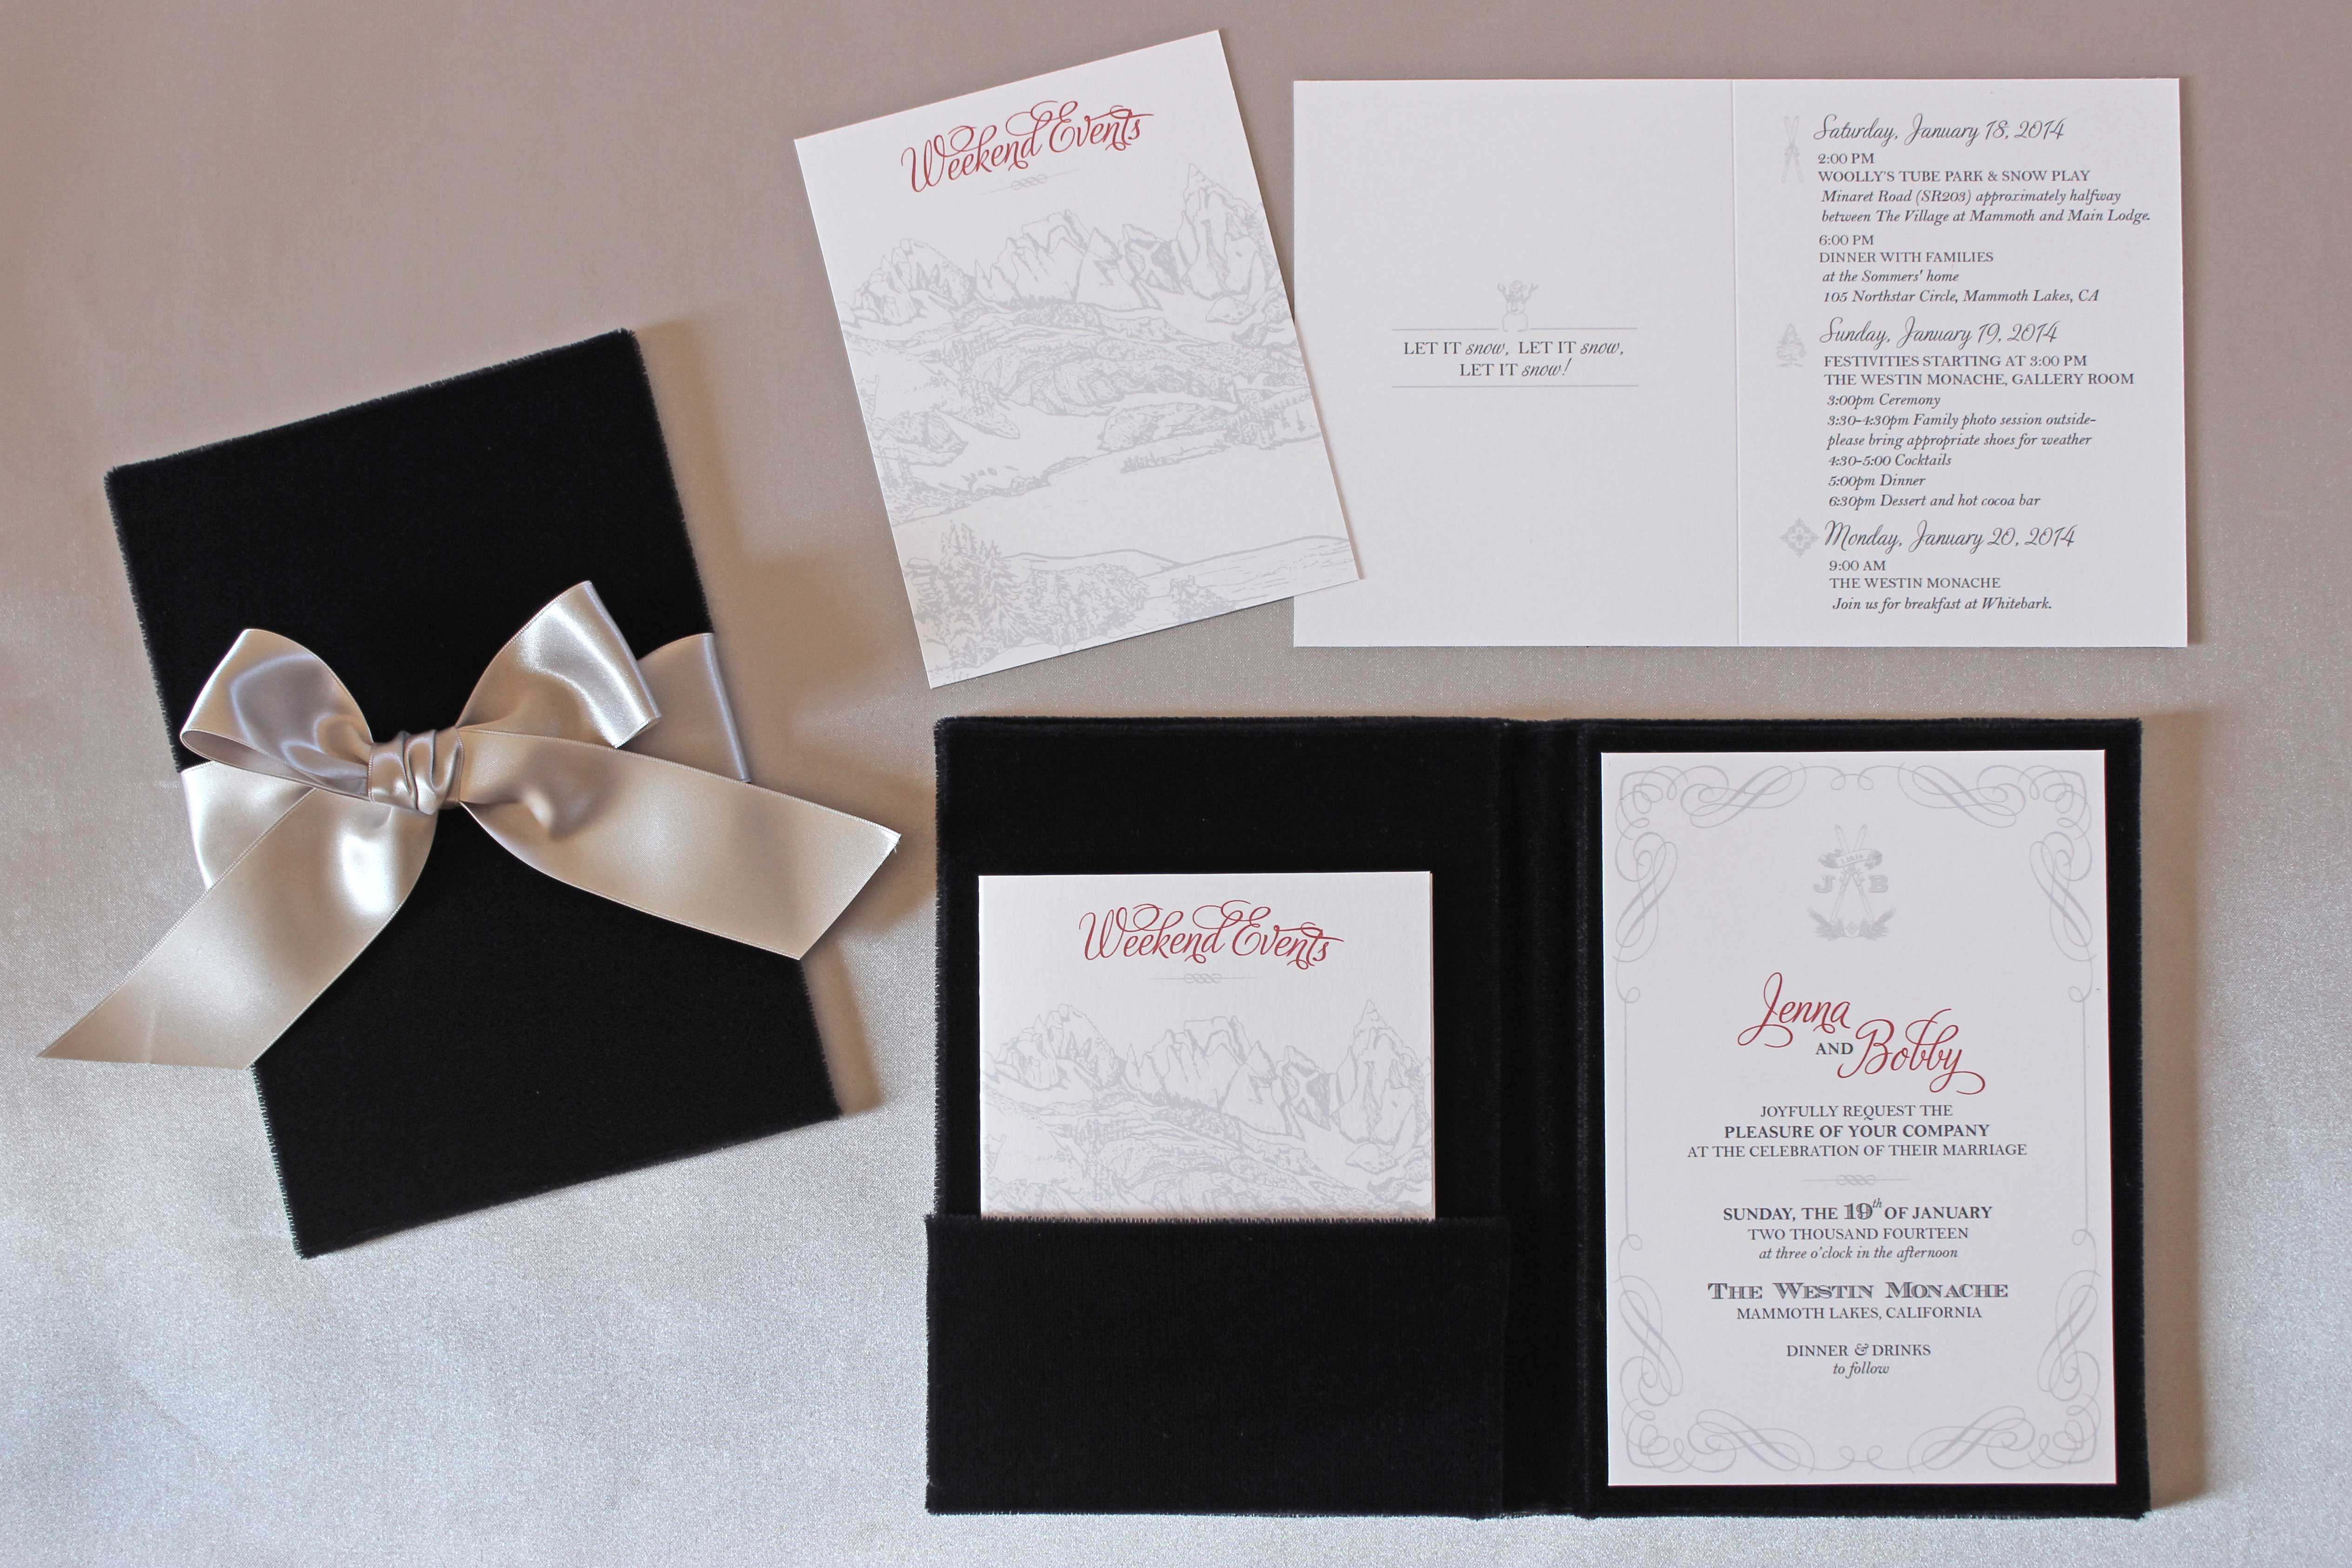 winter wedding ideas: winter wedding invitations - inside weddings, Wedding invitations